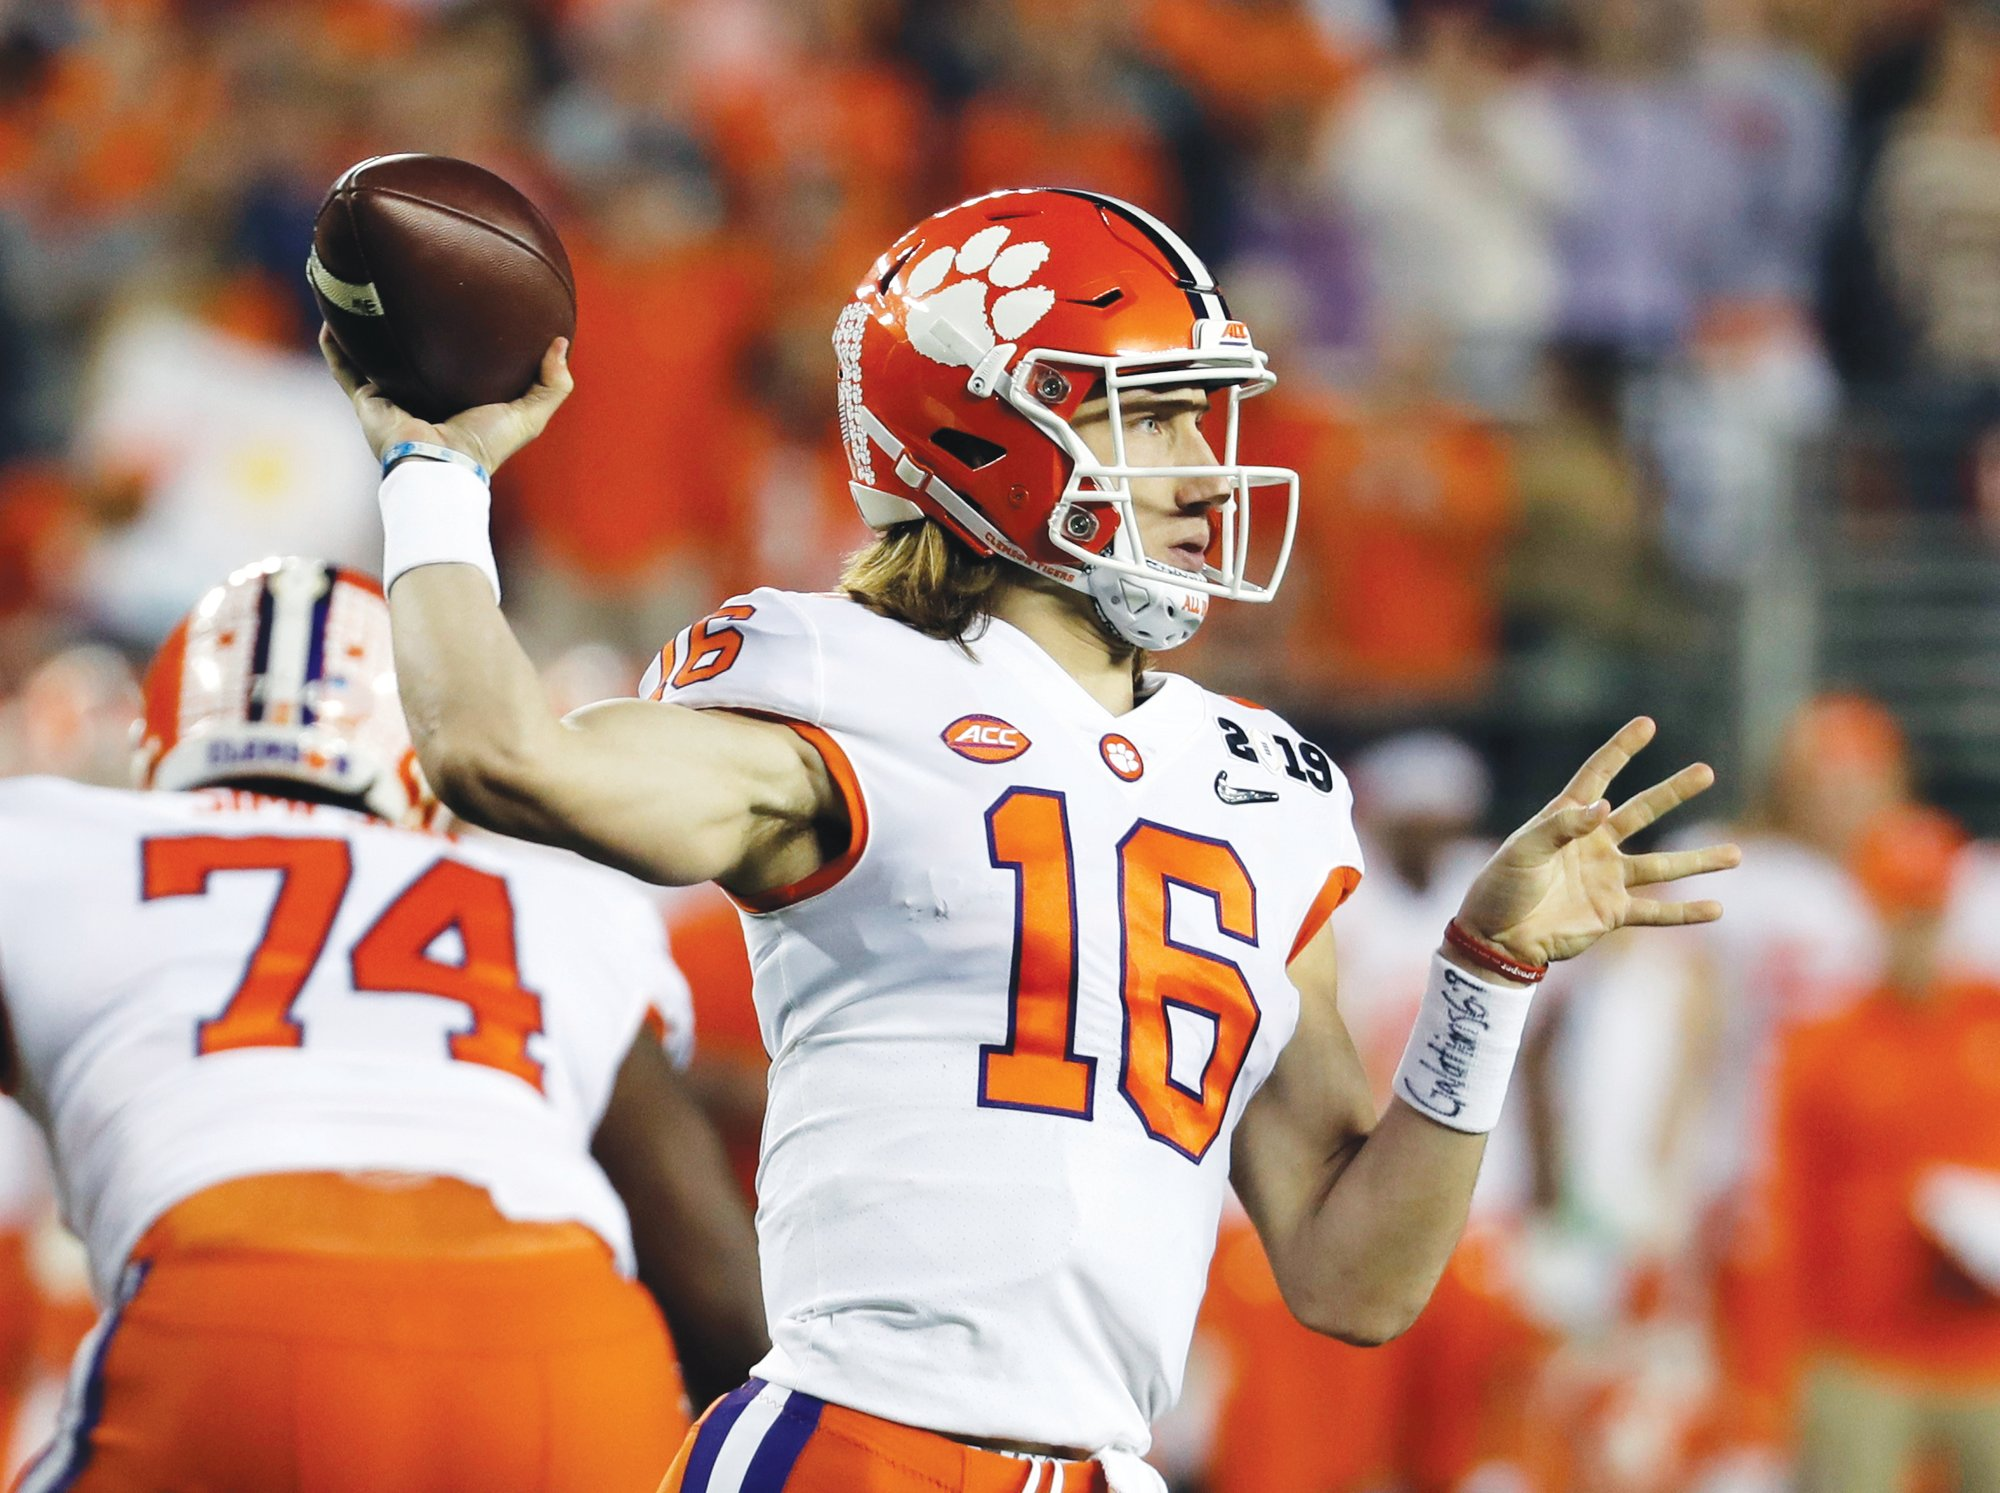 THE ASSOCIATED PRESSTrevor Lawrence is back at quarterback for his sophomore season after leading the Tigers to the national title as a freshman.